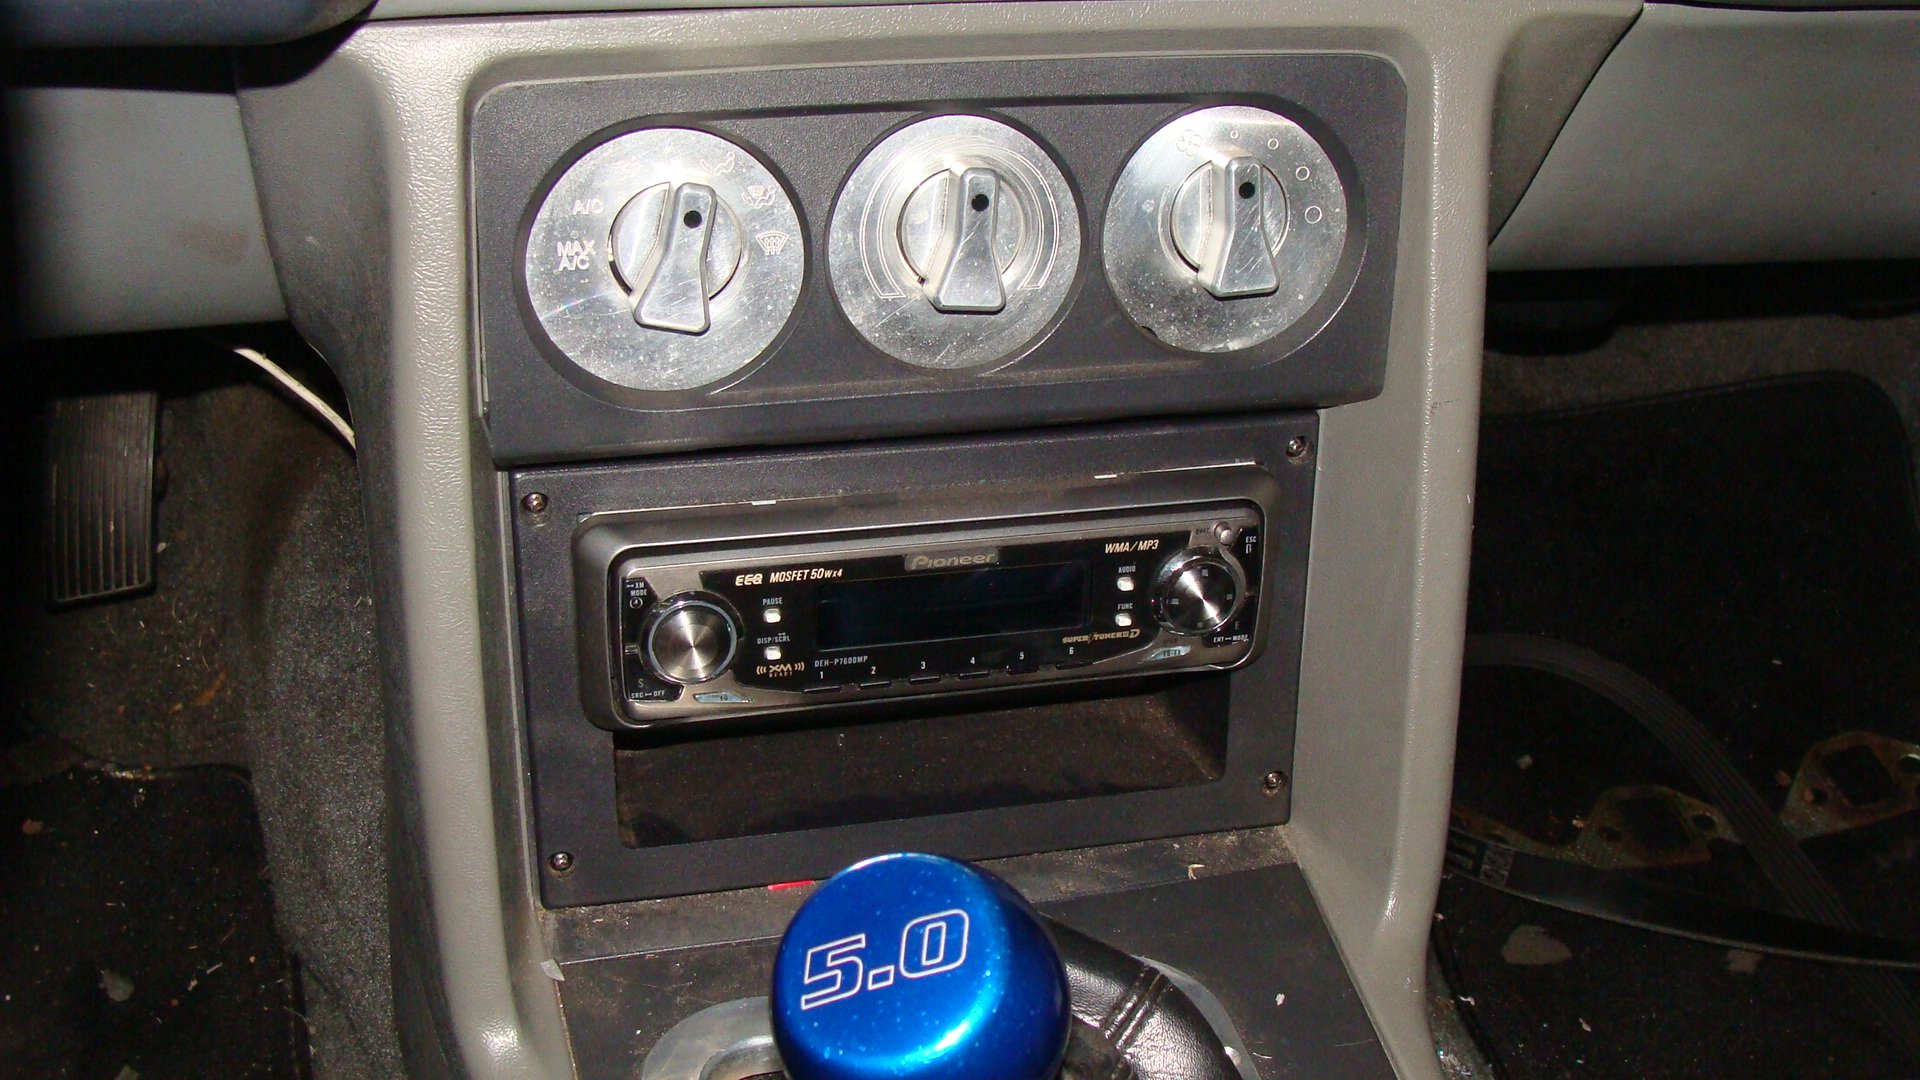 D Cd Changer Custom Dash Install Foxbody Mustang on 2003 Ford Mustang 4 6l Engine